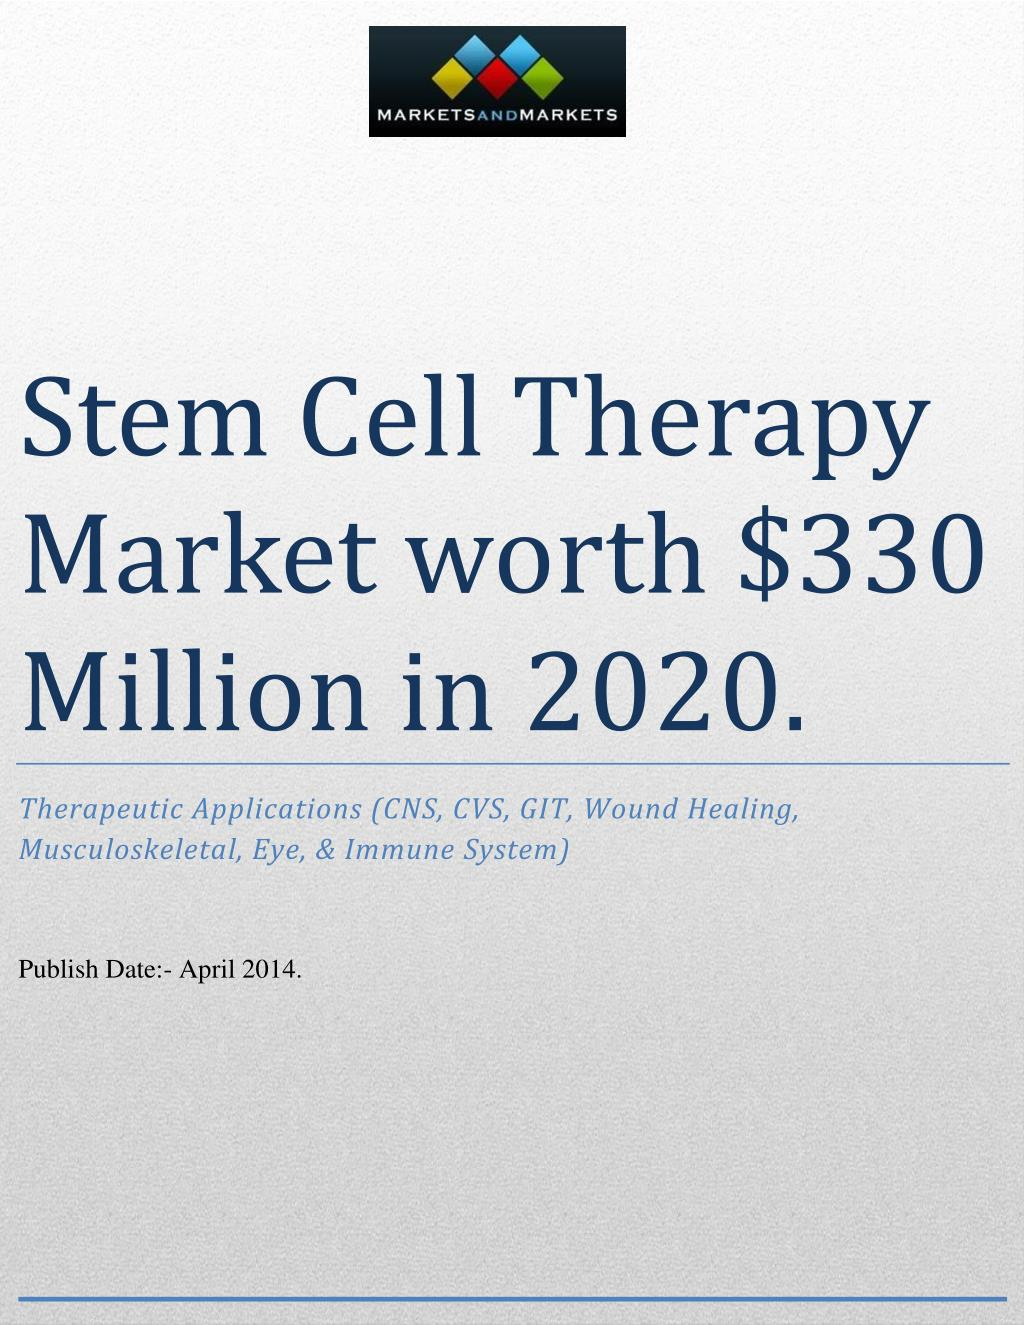 Ppt Stem Cell Therapy Market Powerpoint Presentation Free Download Id 7451596